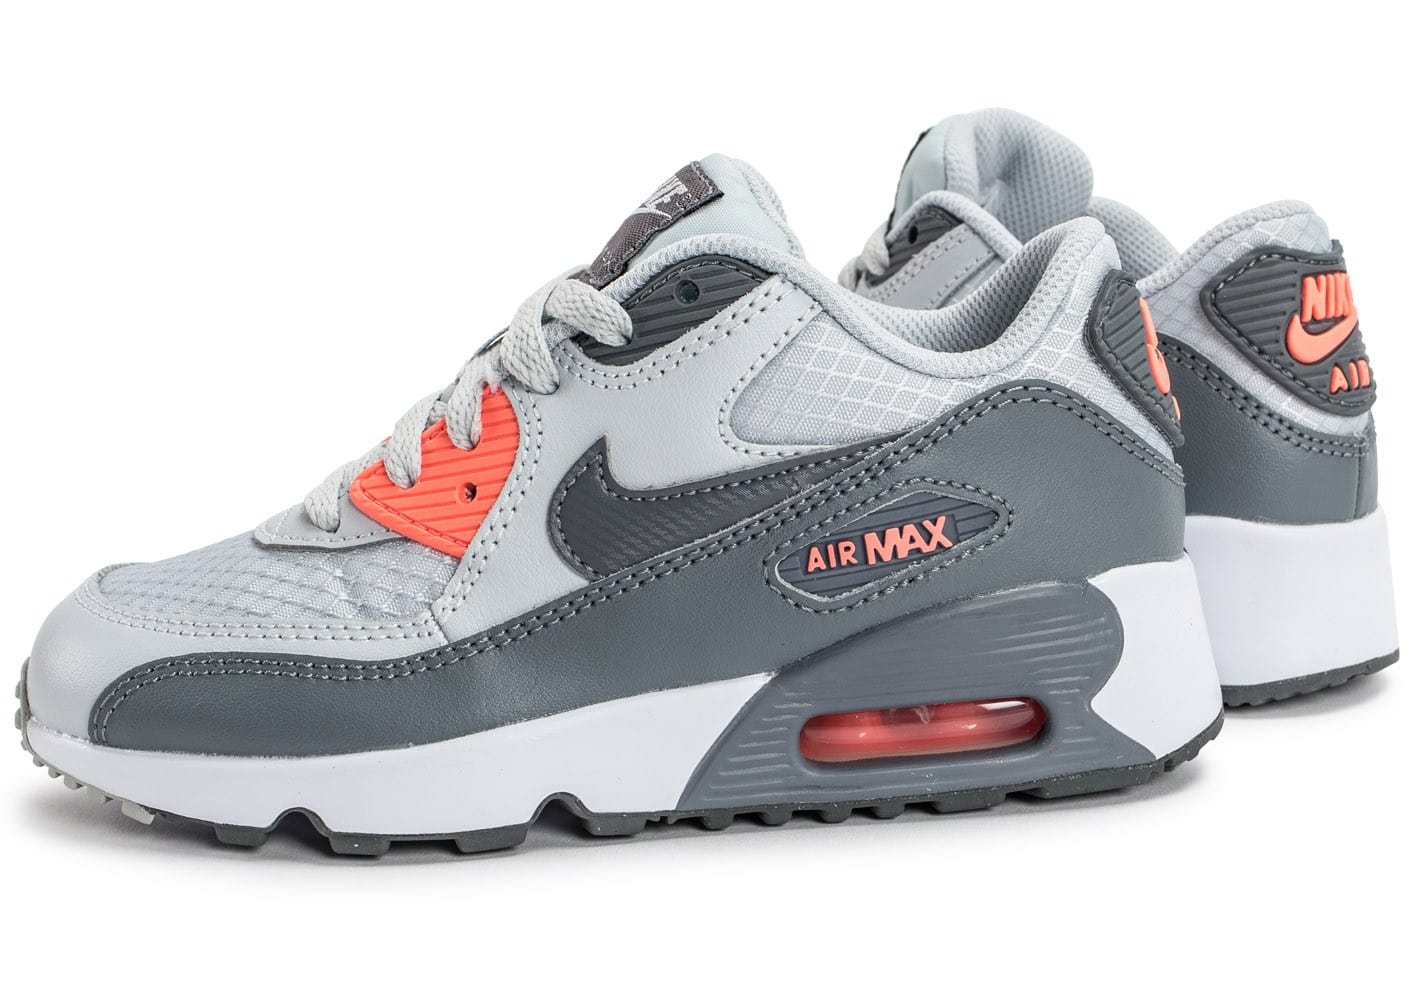 nike air max 90 se mesh enfant grise chaussures toutes les baskets sold es chausport. Black Bedroom Furniture Sets. Home Design Ideas